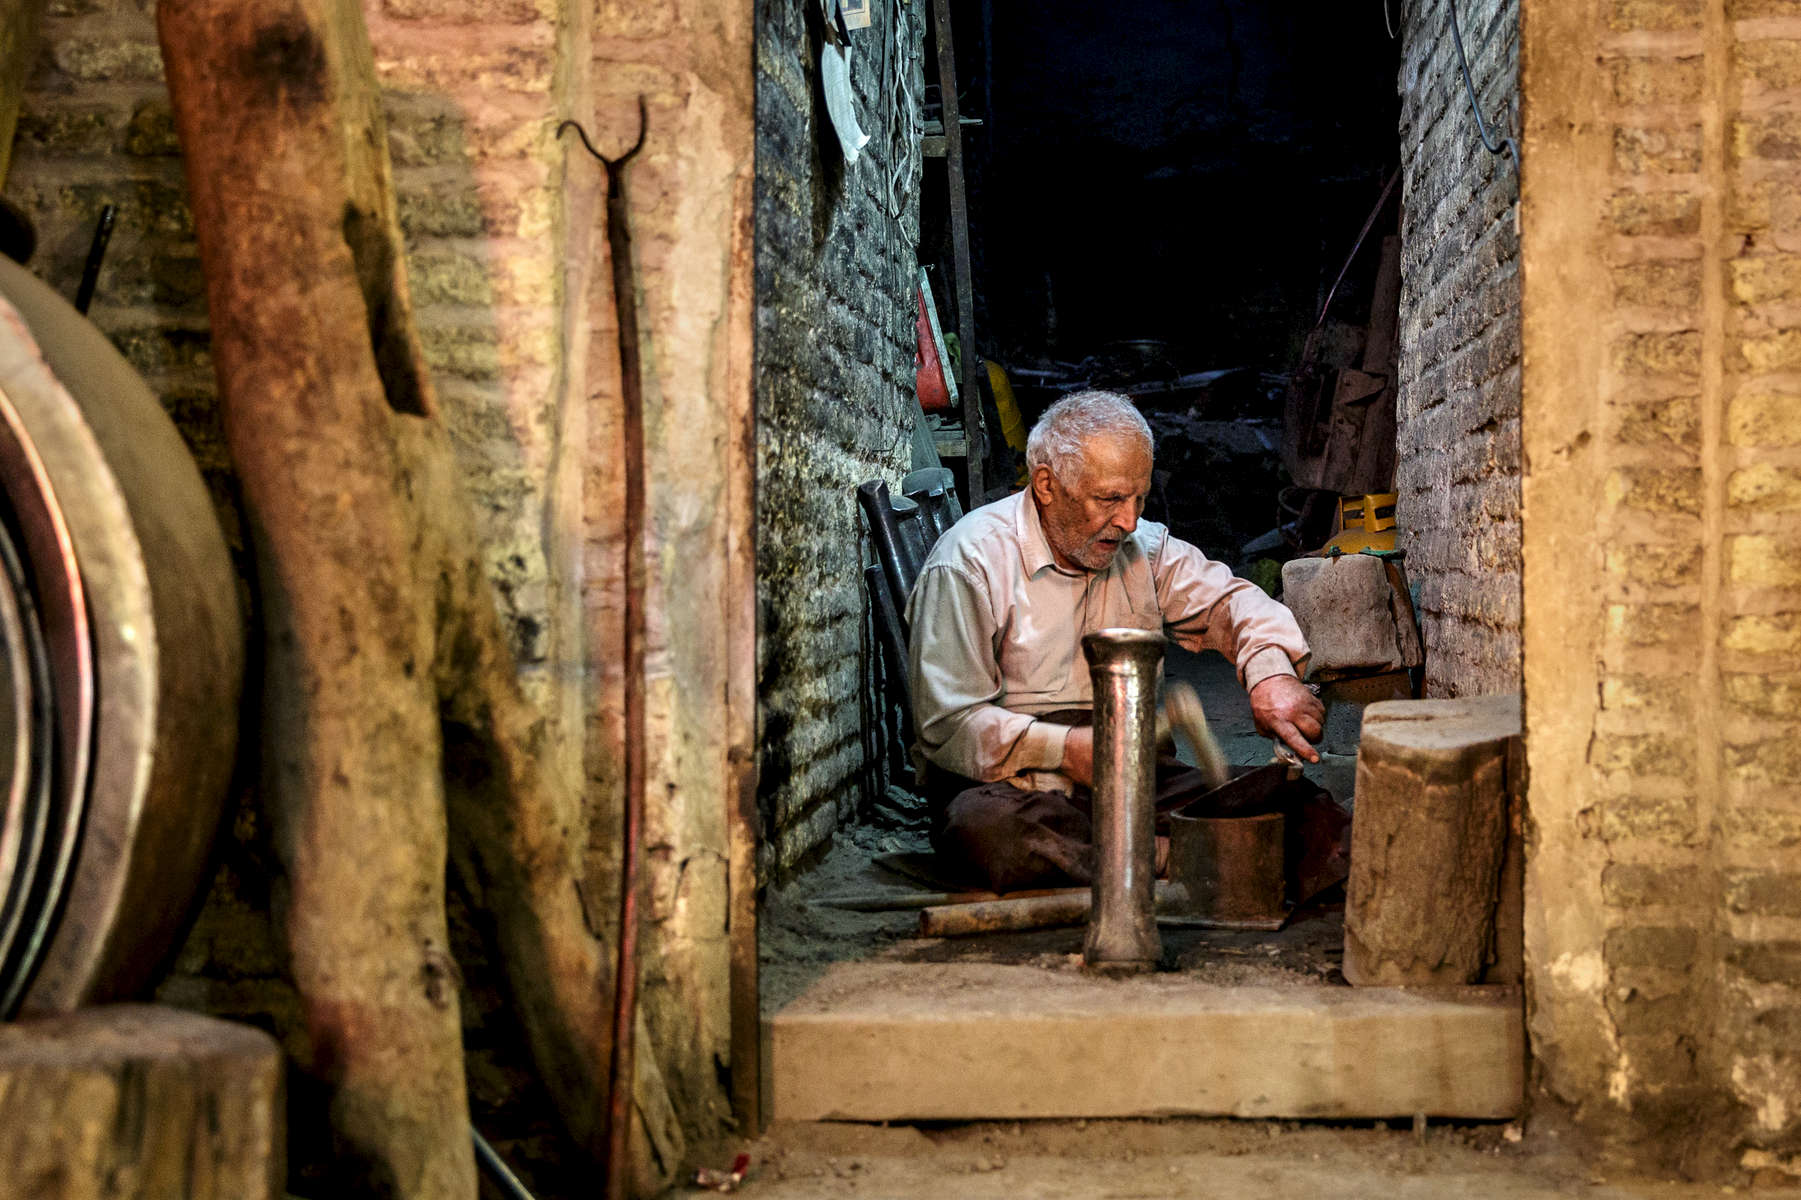 An elderly man making copper pots in Qeysarriyeh Bazaar, Isfahan.